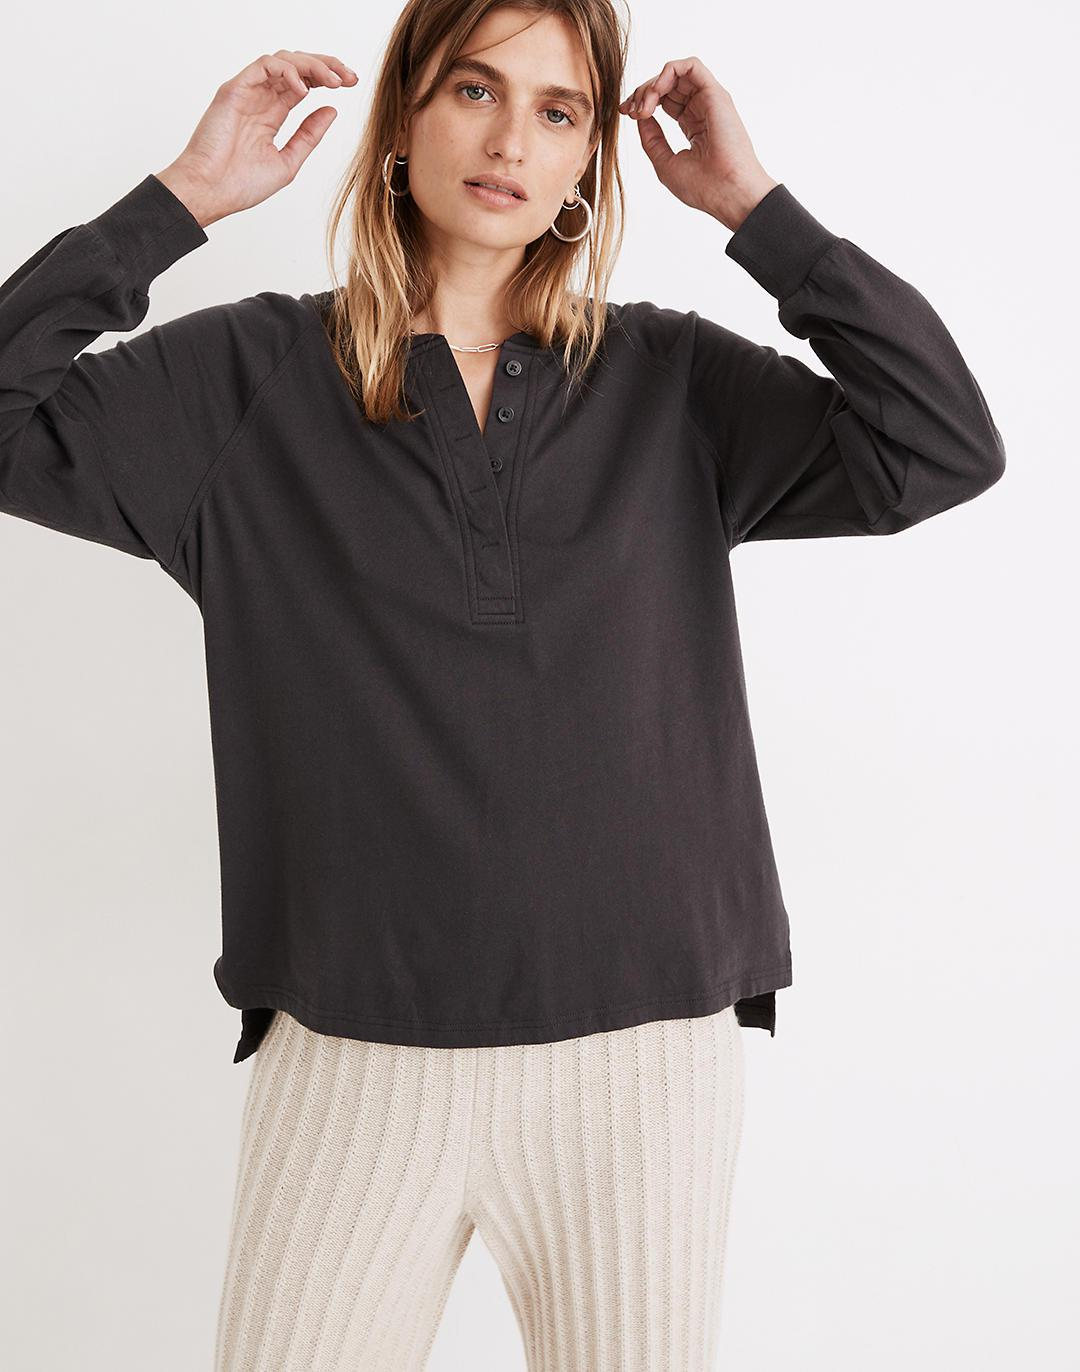 (Re)sourced Cotton Henley Relaxed Tee